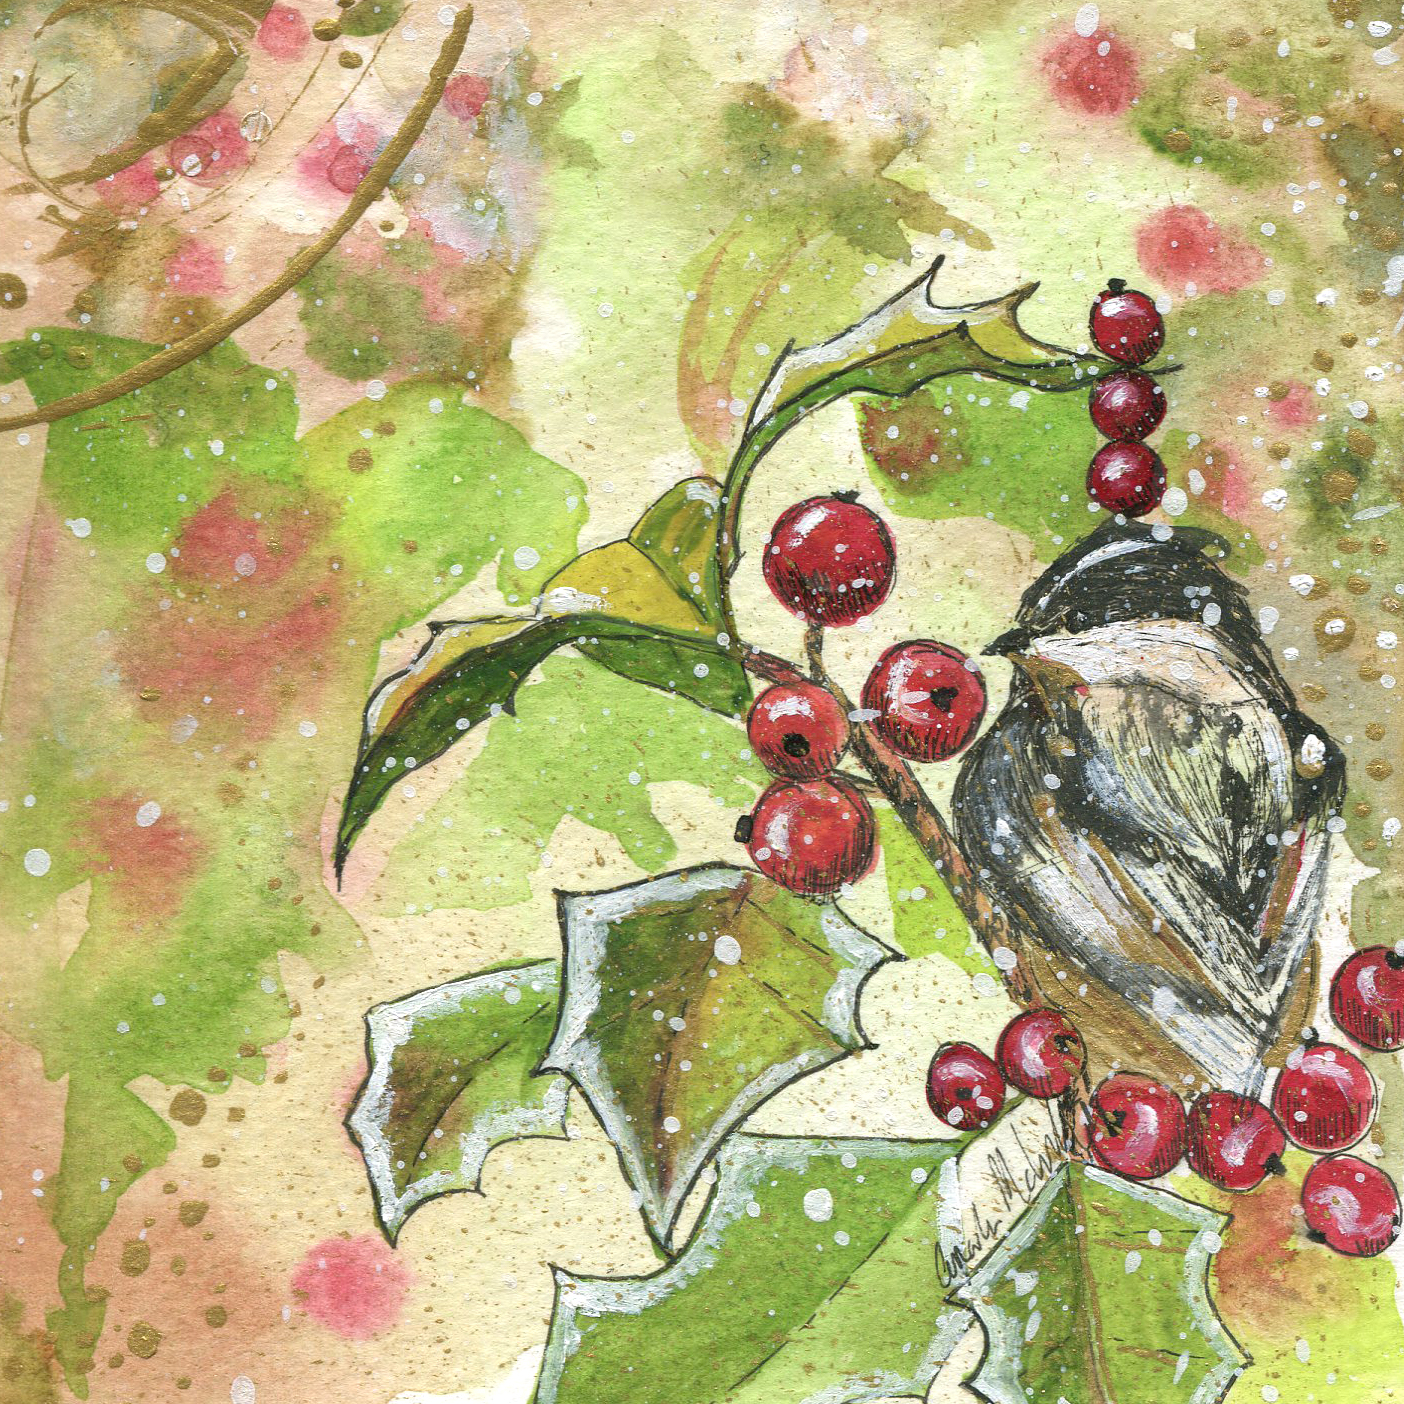 ORIGINAL WATERCOLOR, ACRYLIC AND PEN PAINTING 5X5 Inches, Chickadee and Holly: $65